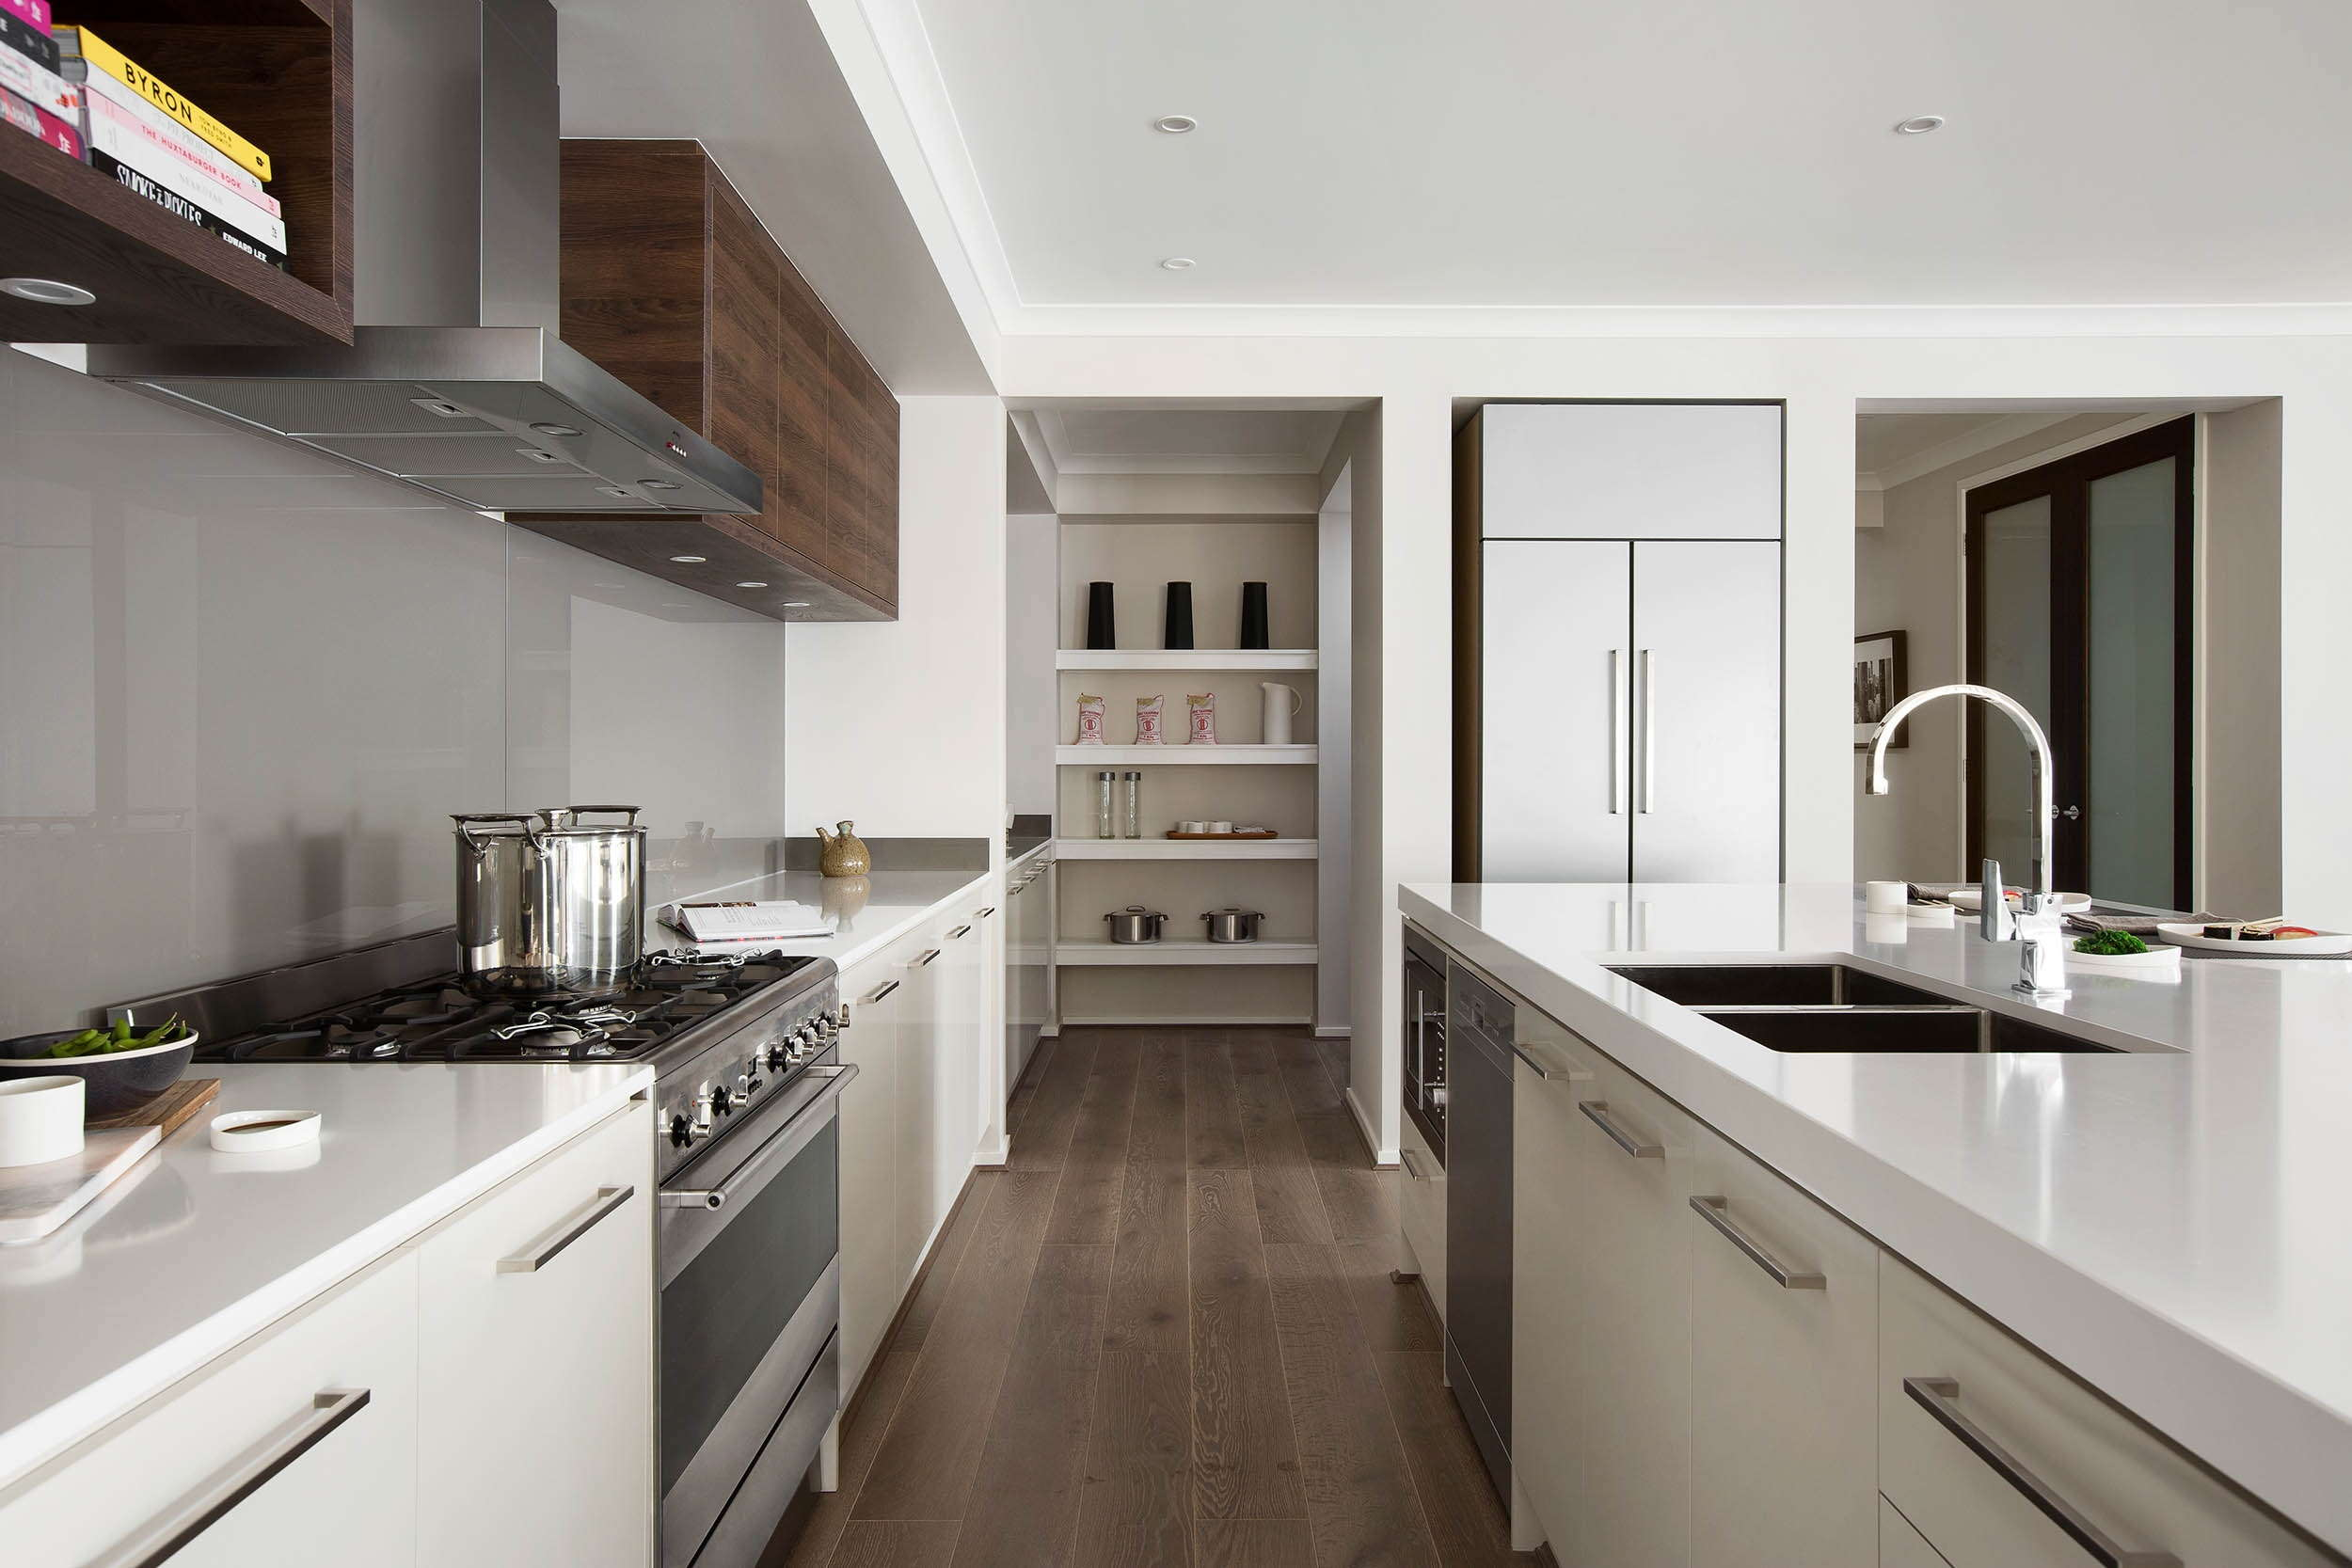 Butler's Pantry design